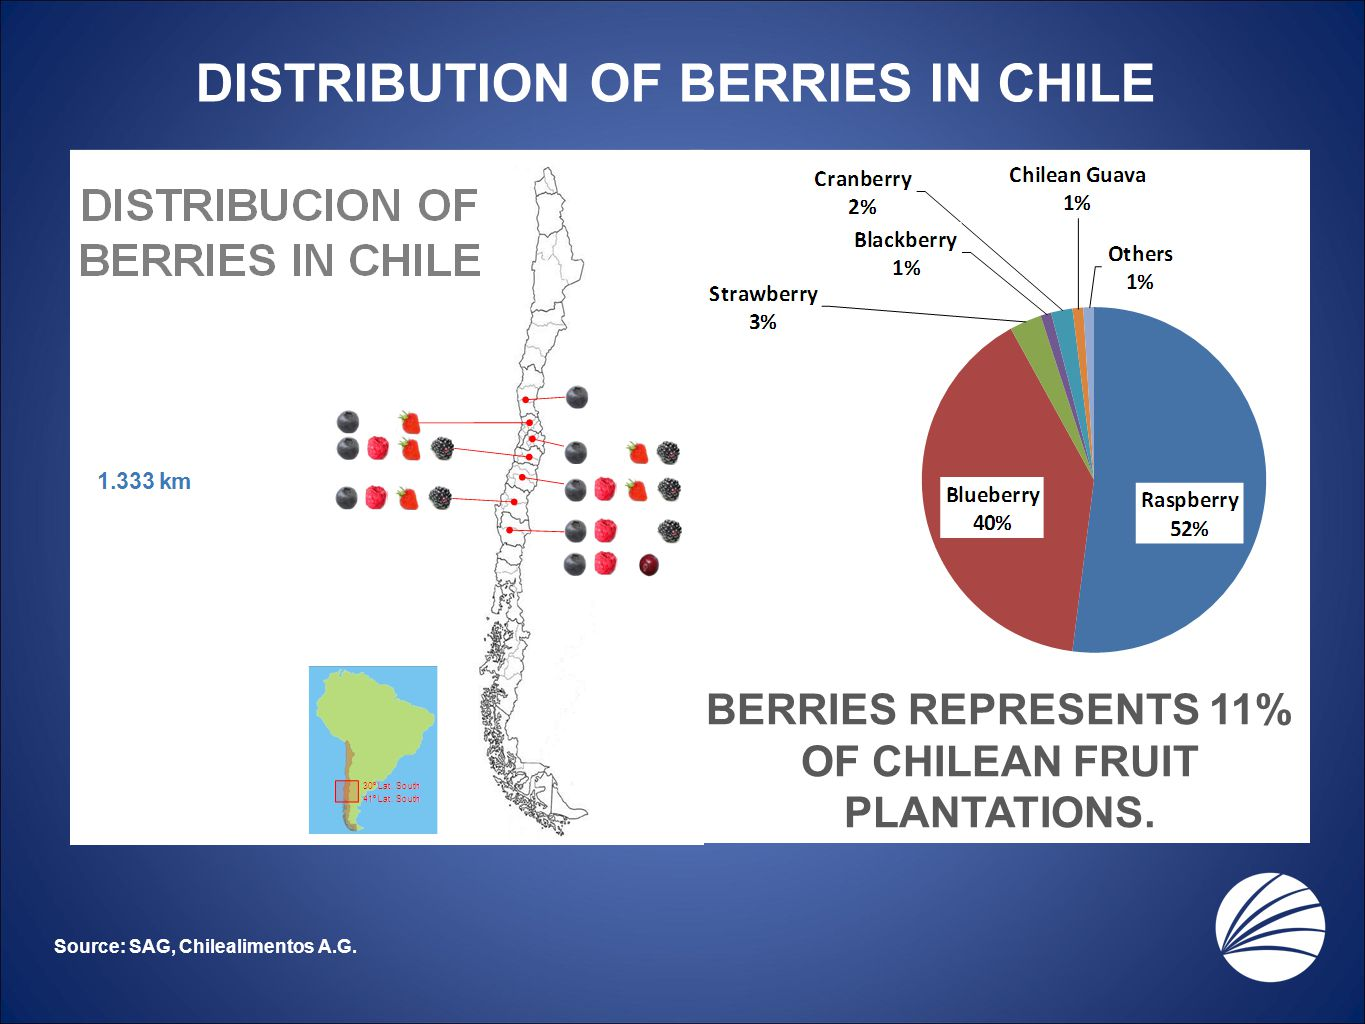 DISTRIBUTION OF BERRIES IN CHILE